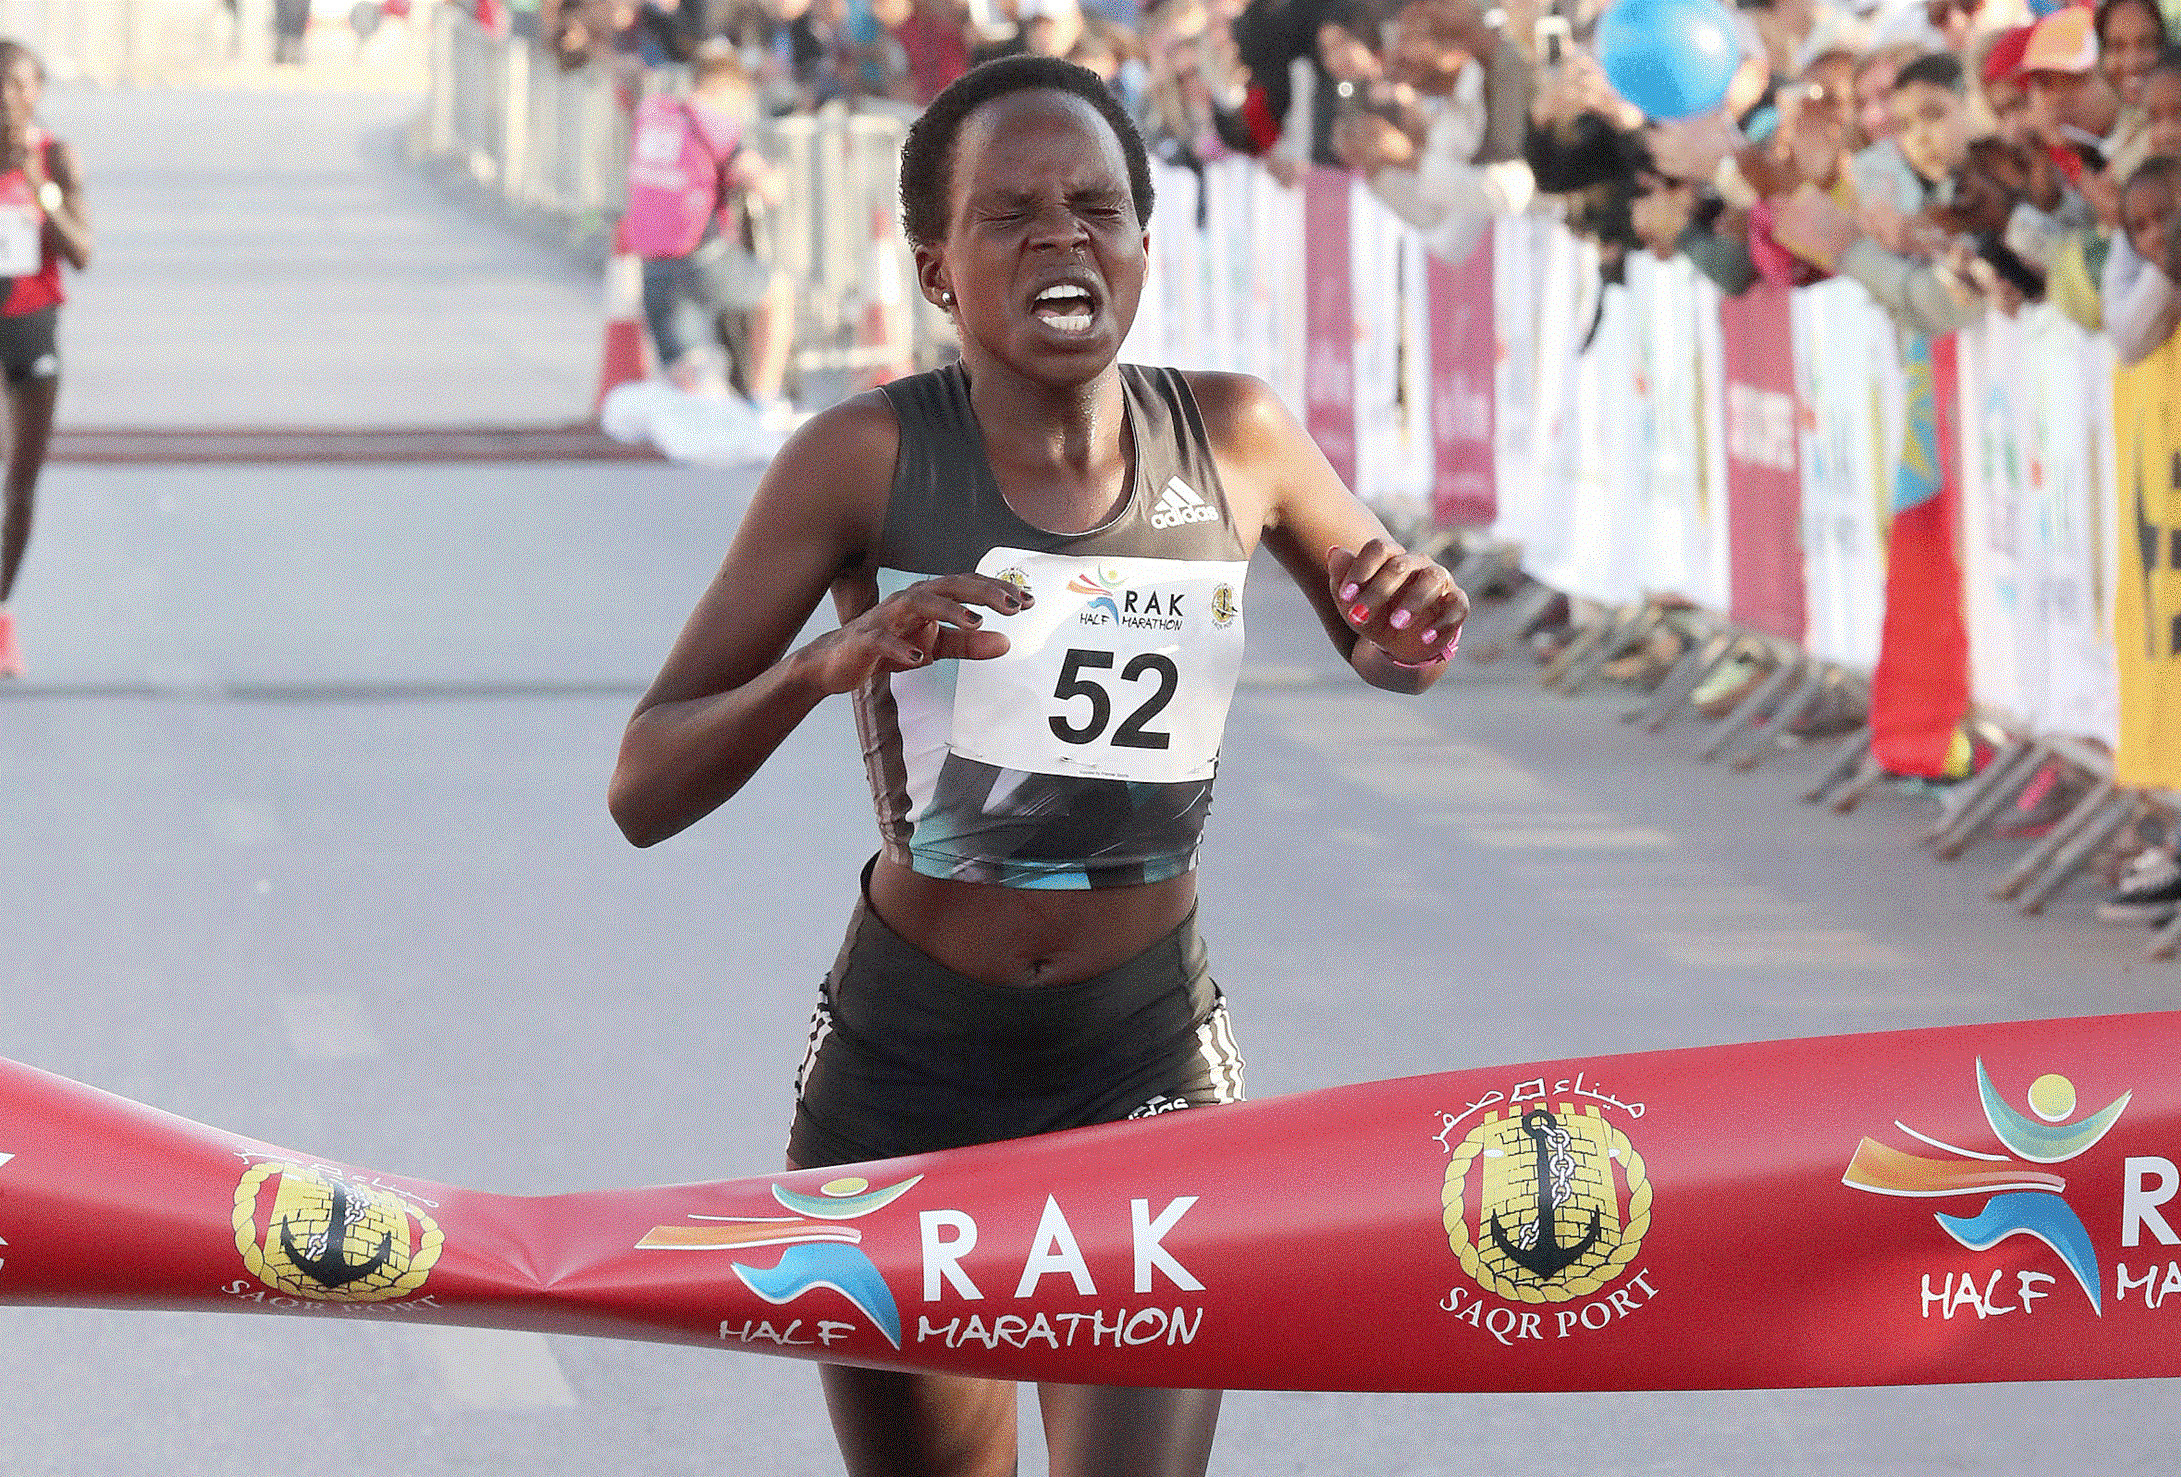 Former World Half Marathon record holder Peris Jepchirchir will be looking forward to reclaim the Ras Khaimah Half Marathon title next month